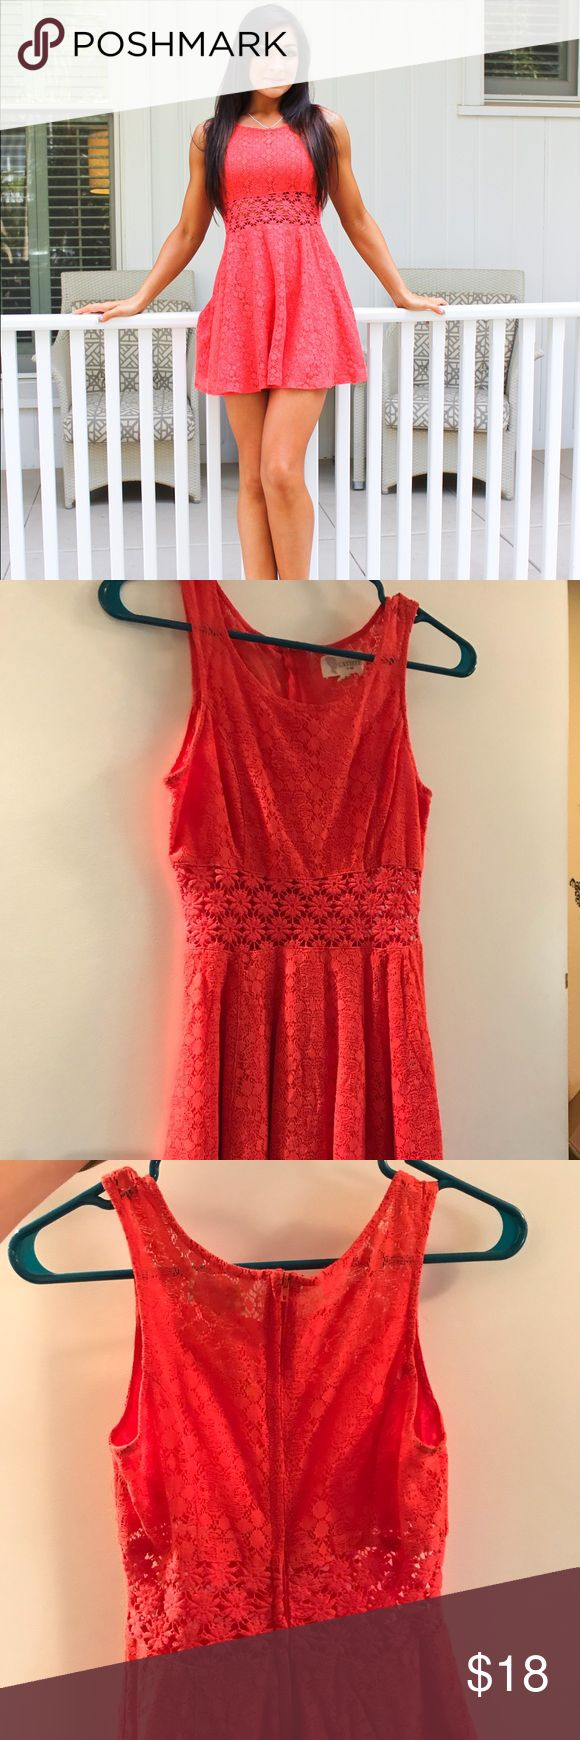 Coral Sundress L'ATISTE by Amy Gorgeous coral sundress I bought from Nordstrom. Wore only a few times. In like new condition. Allover lace pattern - the waistband has no underlay so it's just lace over skin. Dresses Mini